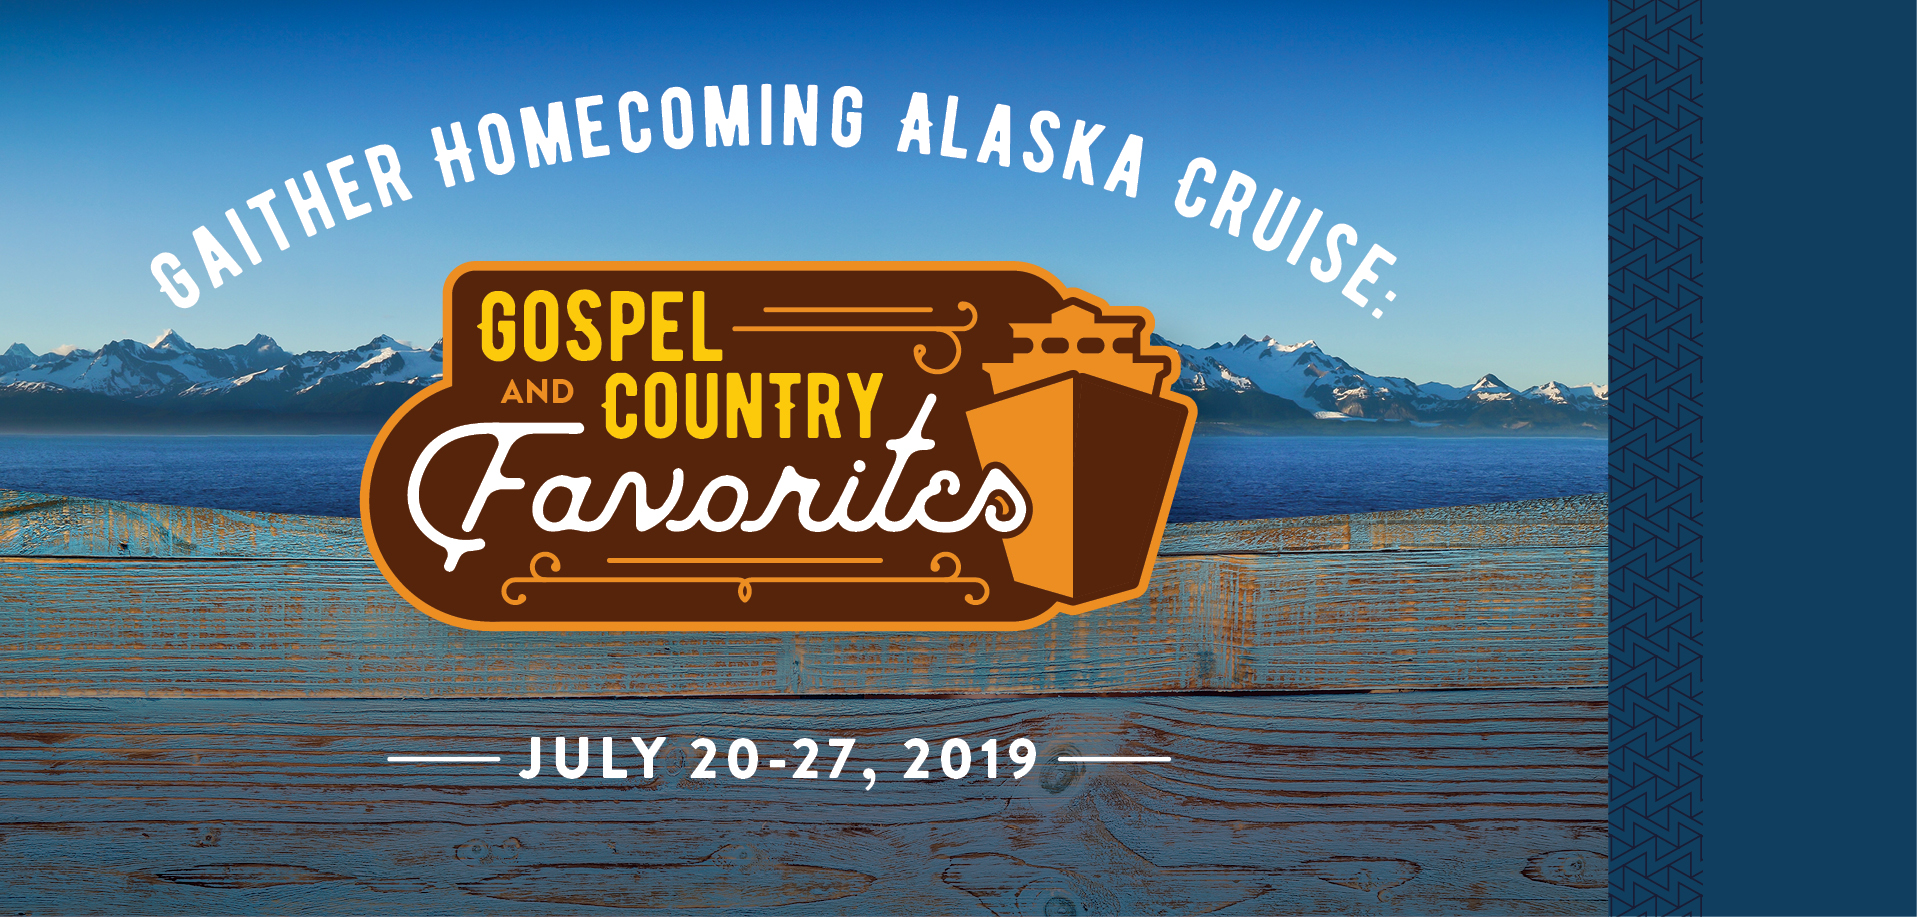 Take a Christian Cruise with Gaither Homecoming Alaska Cruise - Gospel & Country Favorites - July 20-27, 2019